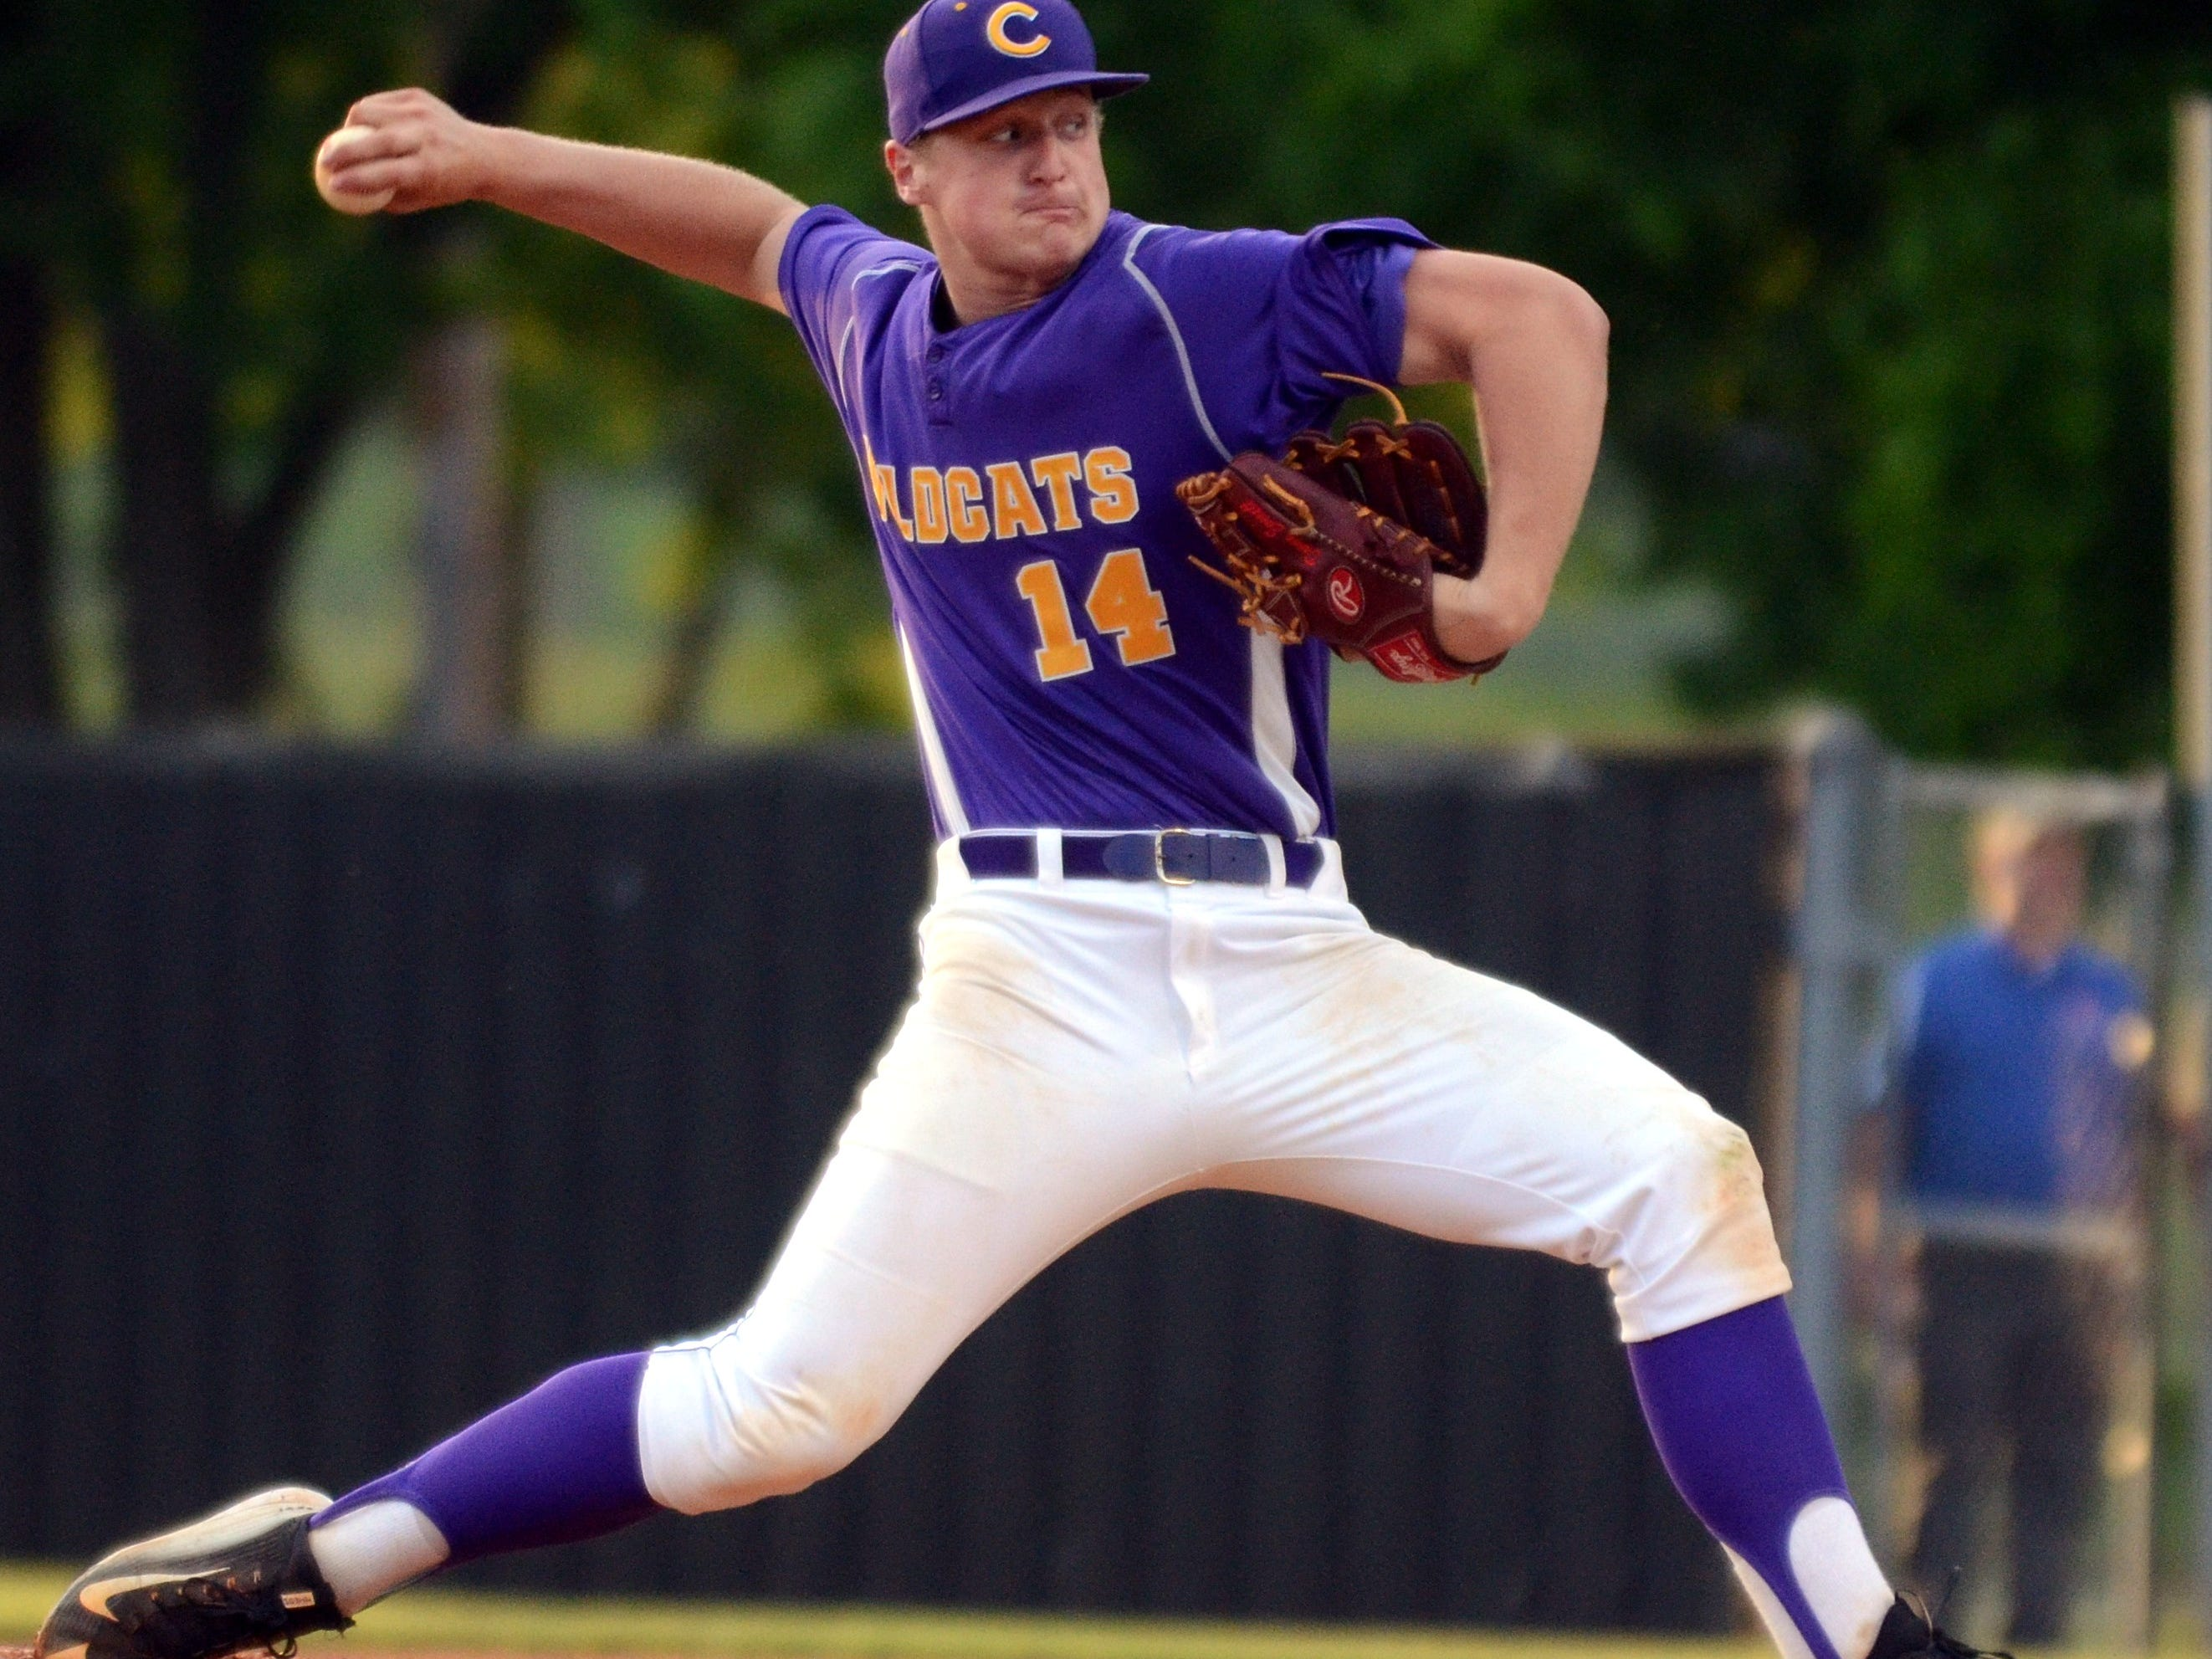 Clarksville pitcher and Vanderbilt signee Donny Everett was 9-1 with a 0.93 ERA and a pair of saves last season.